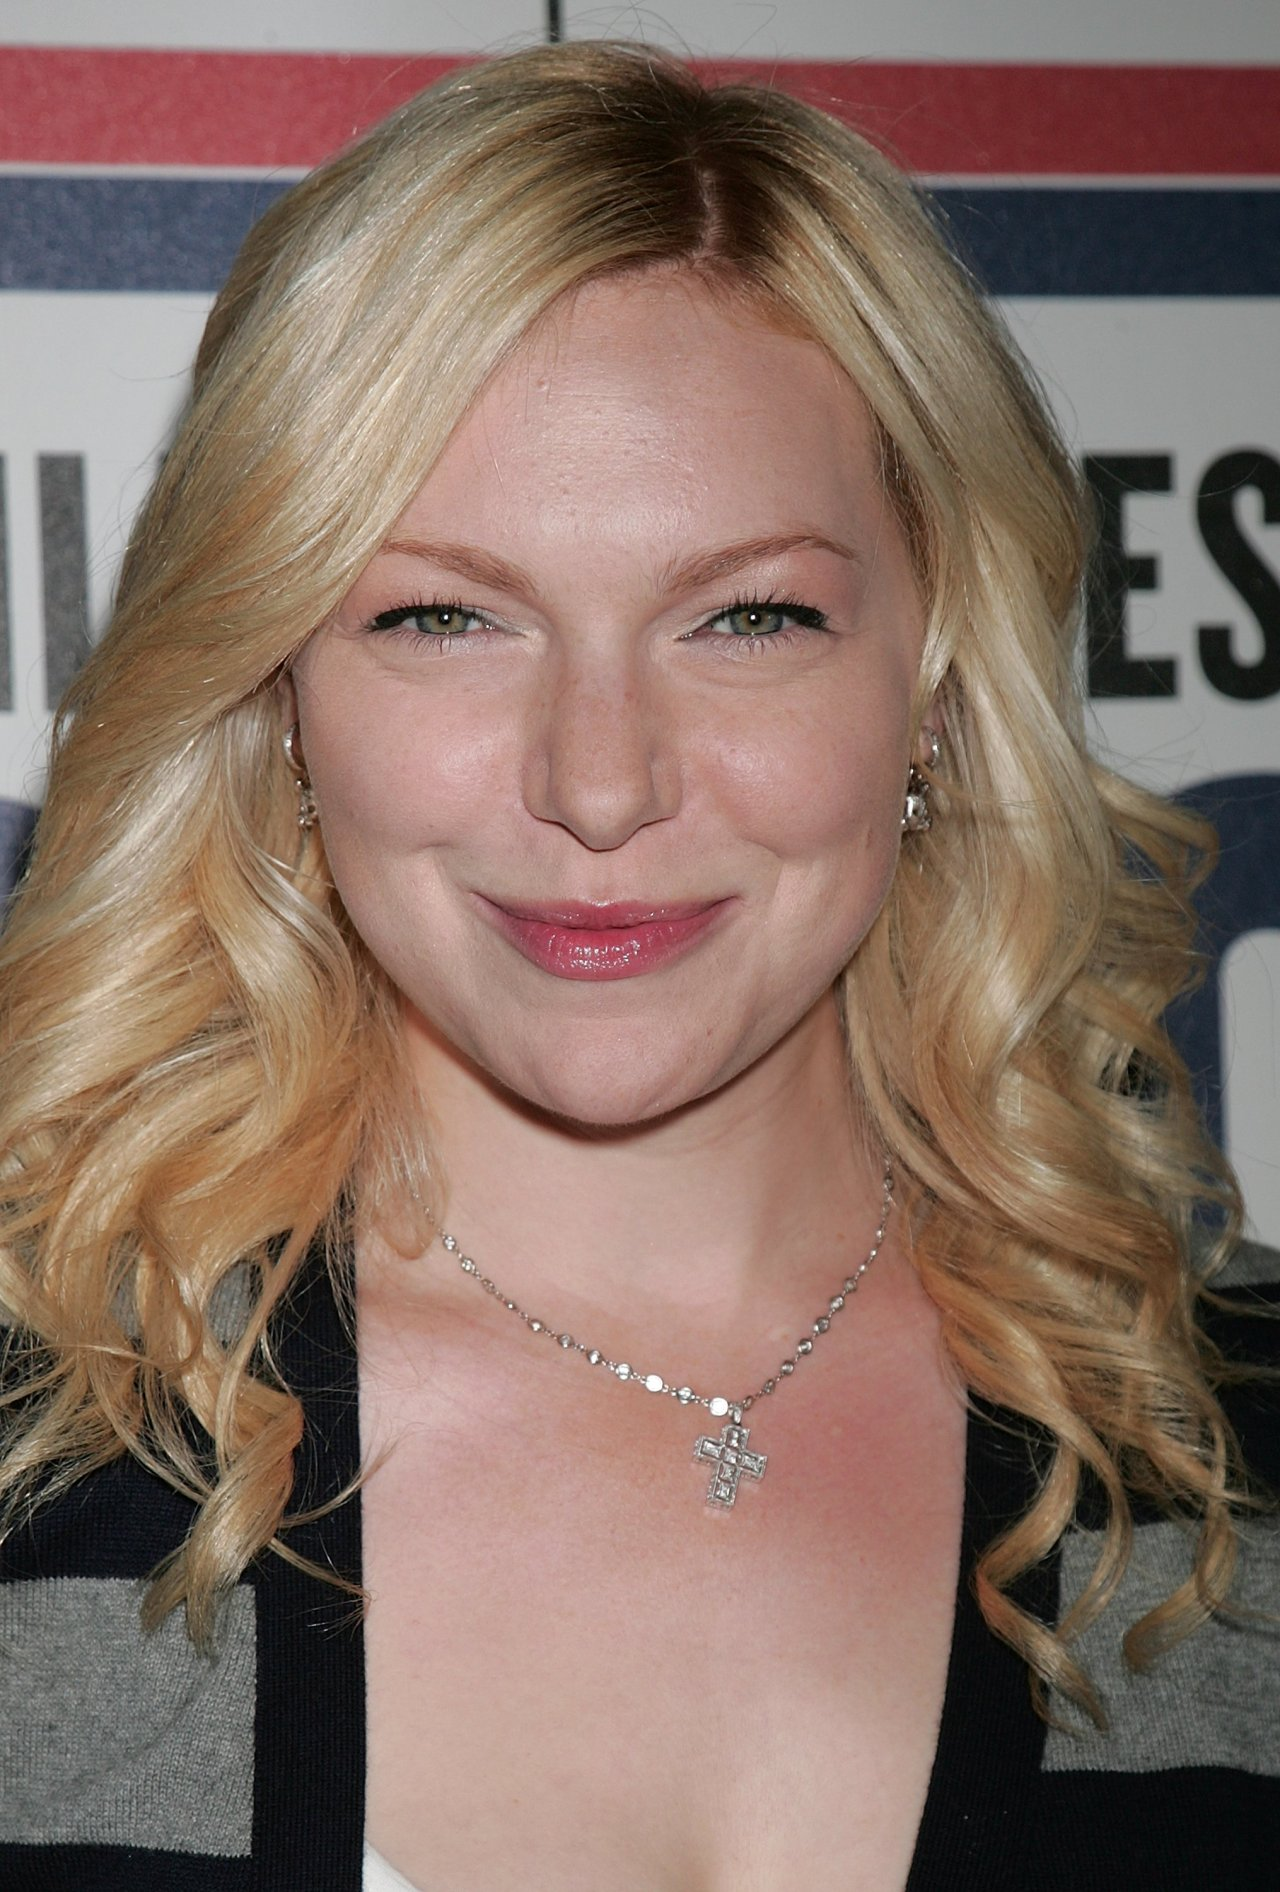 Laura Prepon leaked wallpapers